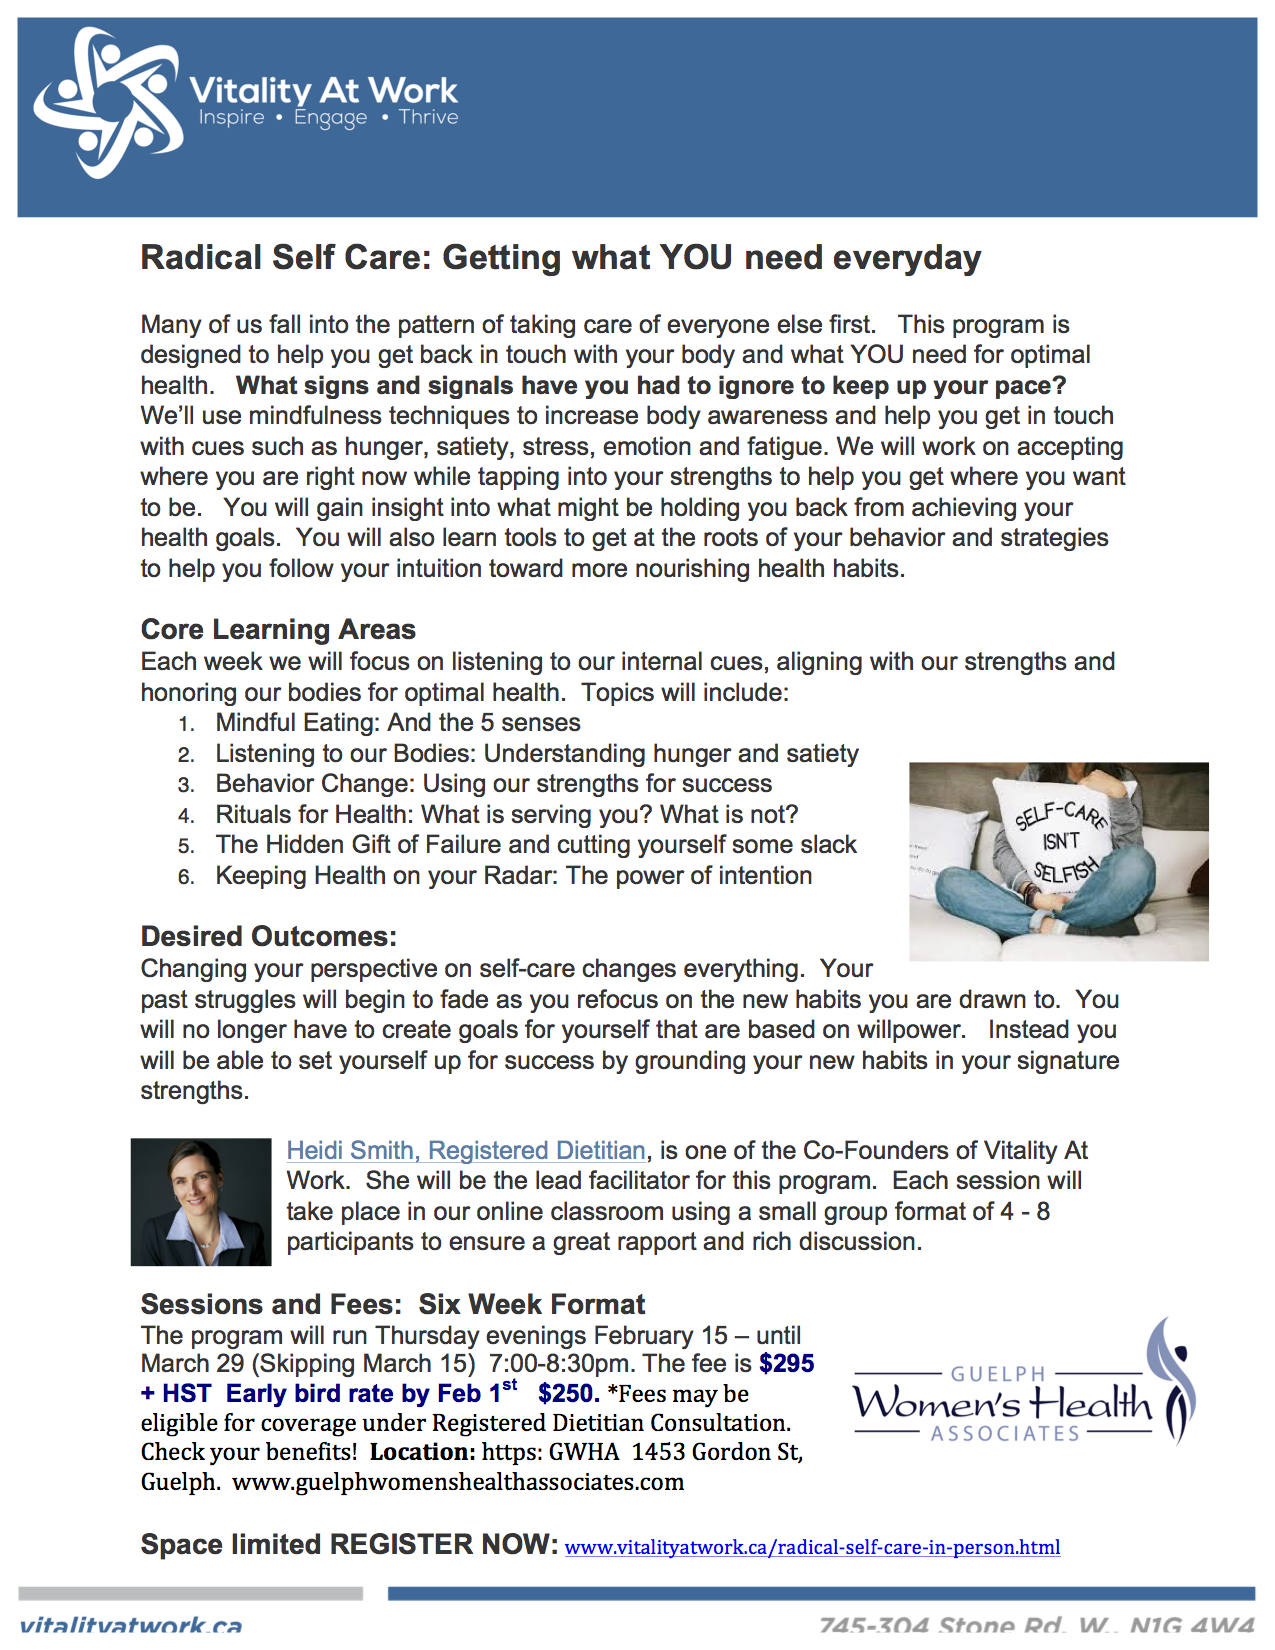 Radical Self Care Program by Heidi Smith at Guelph Womens Health Associates